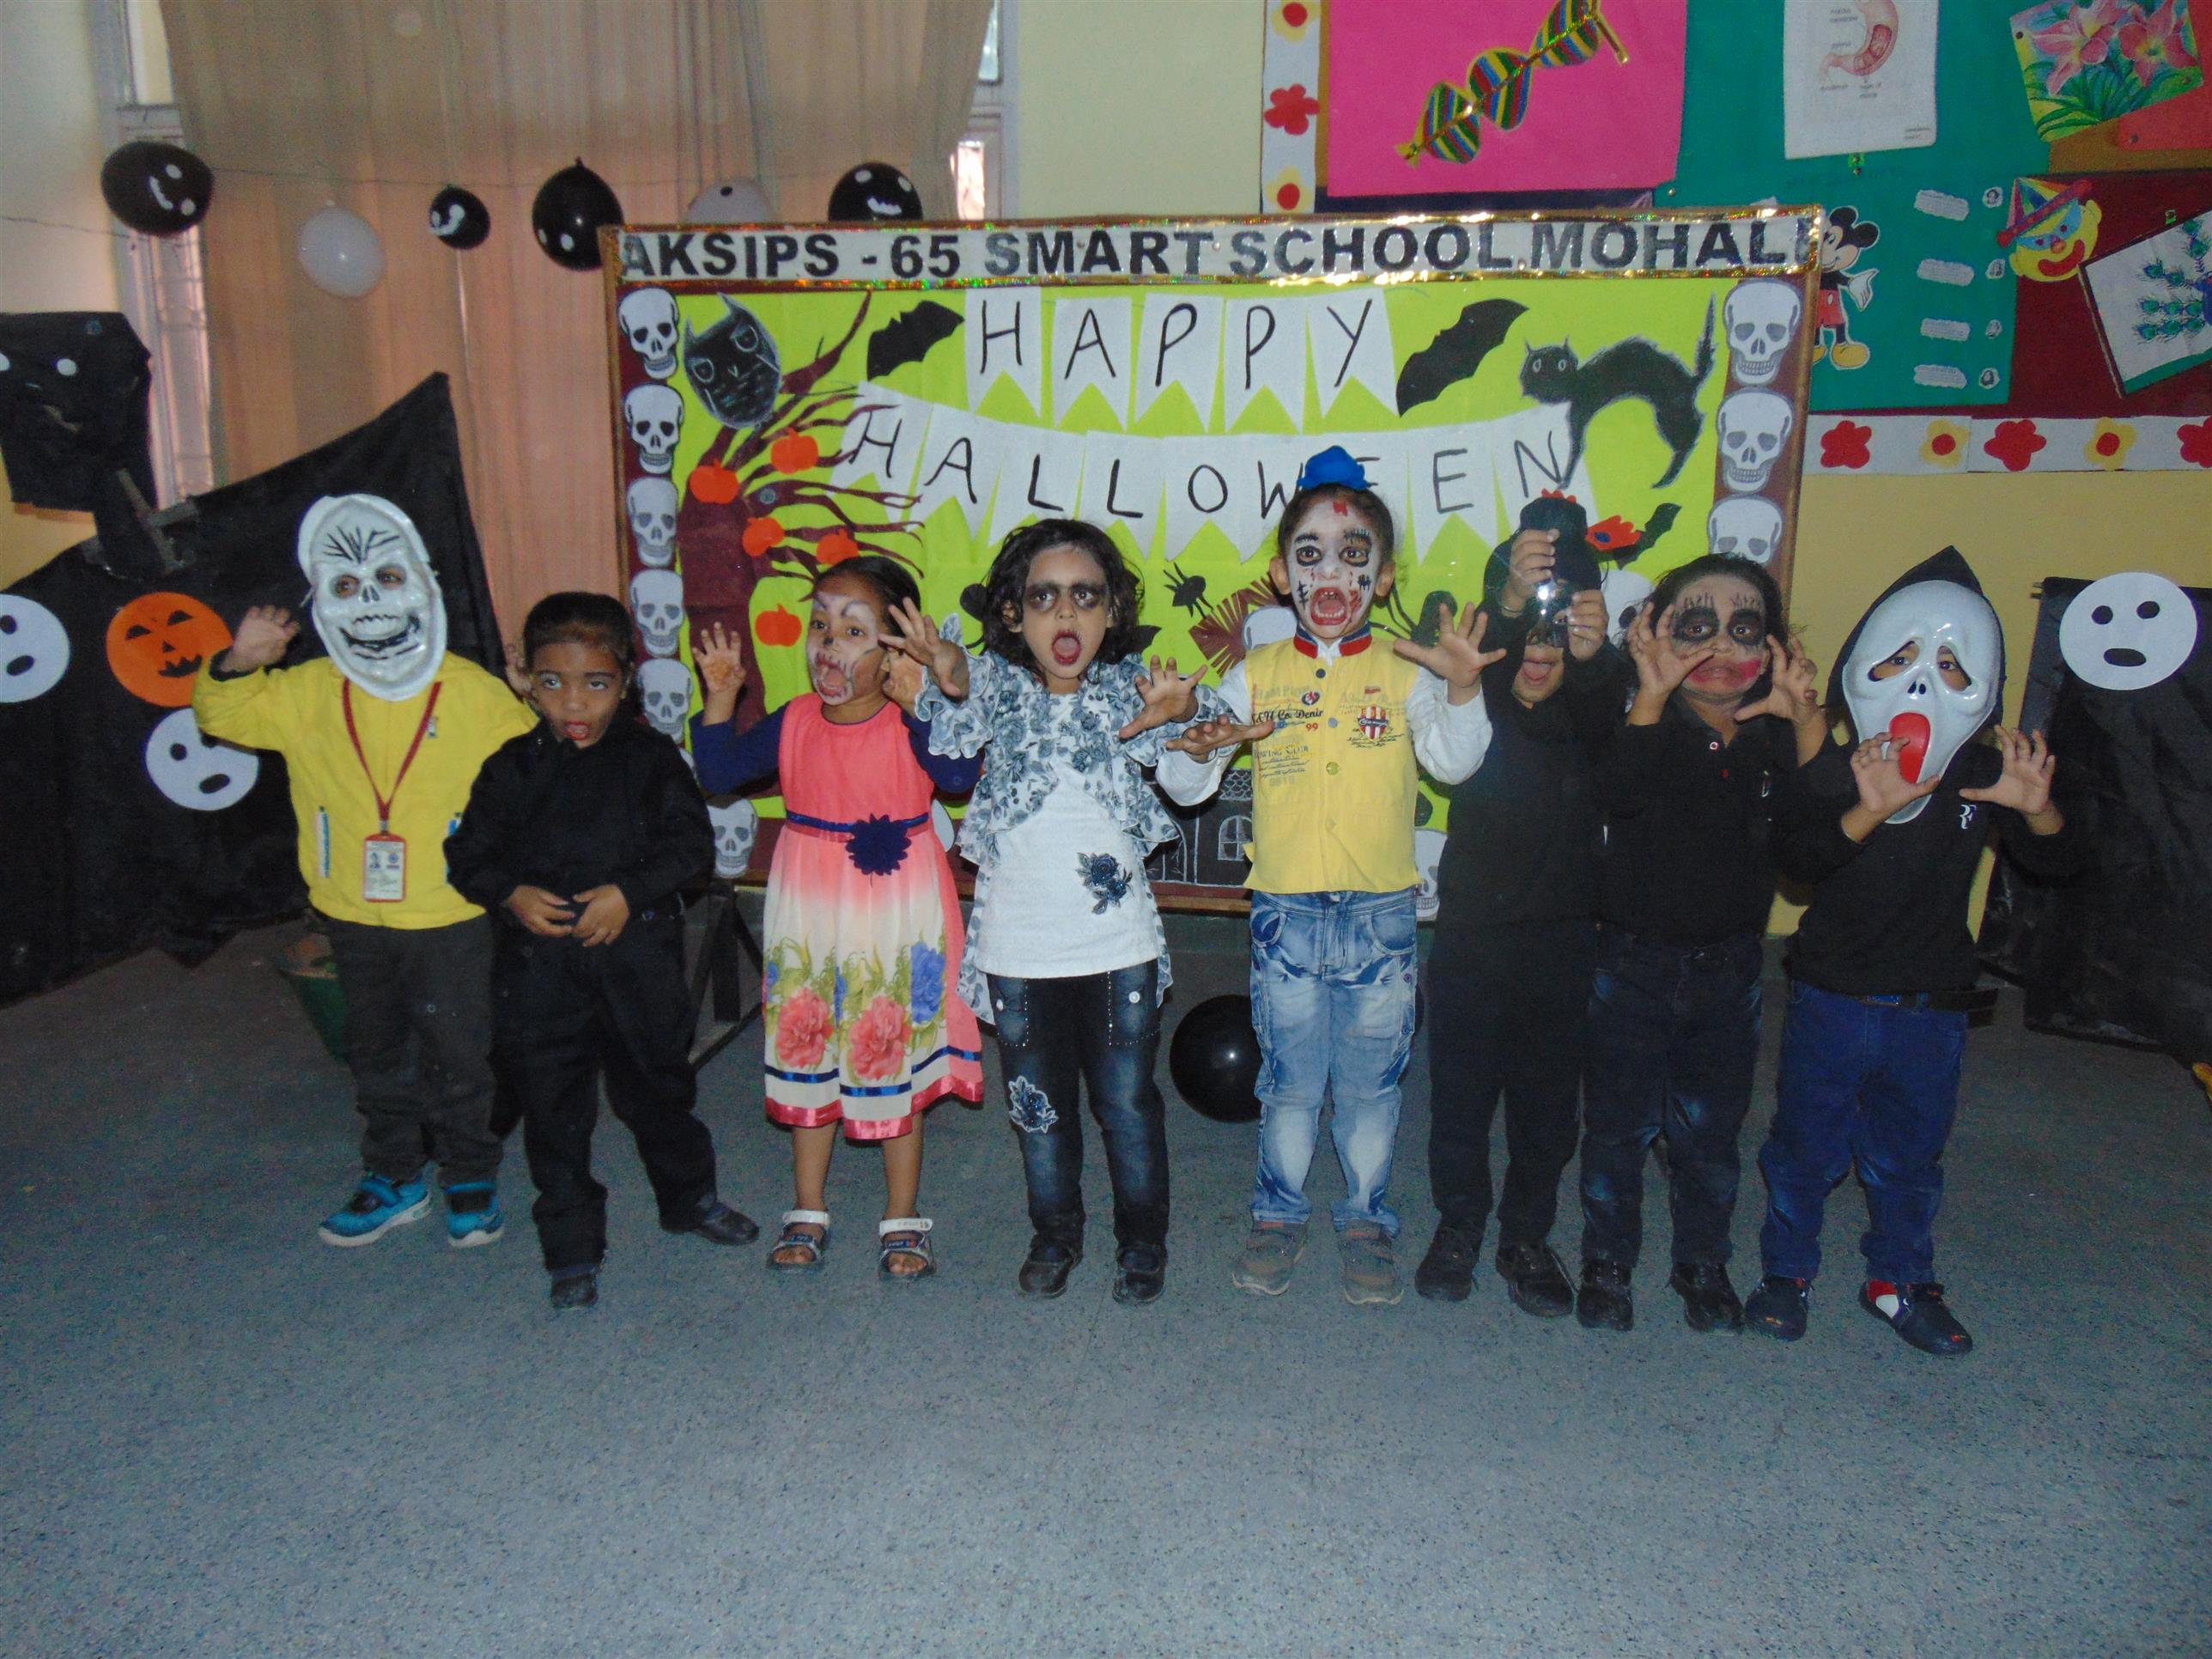 """ When black cats prowl and pumpkins gleam, may luck be yours on Hakkoween"" 'Halloween' is dress up time for kids: Halloween time at AKSIPS-65 Smart School 